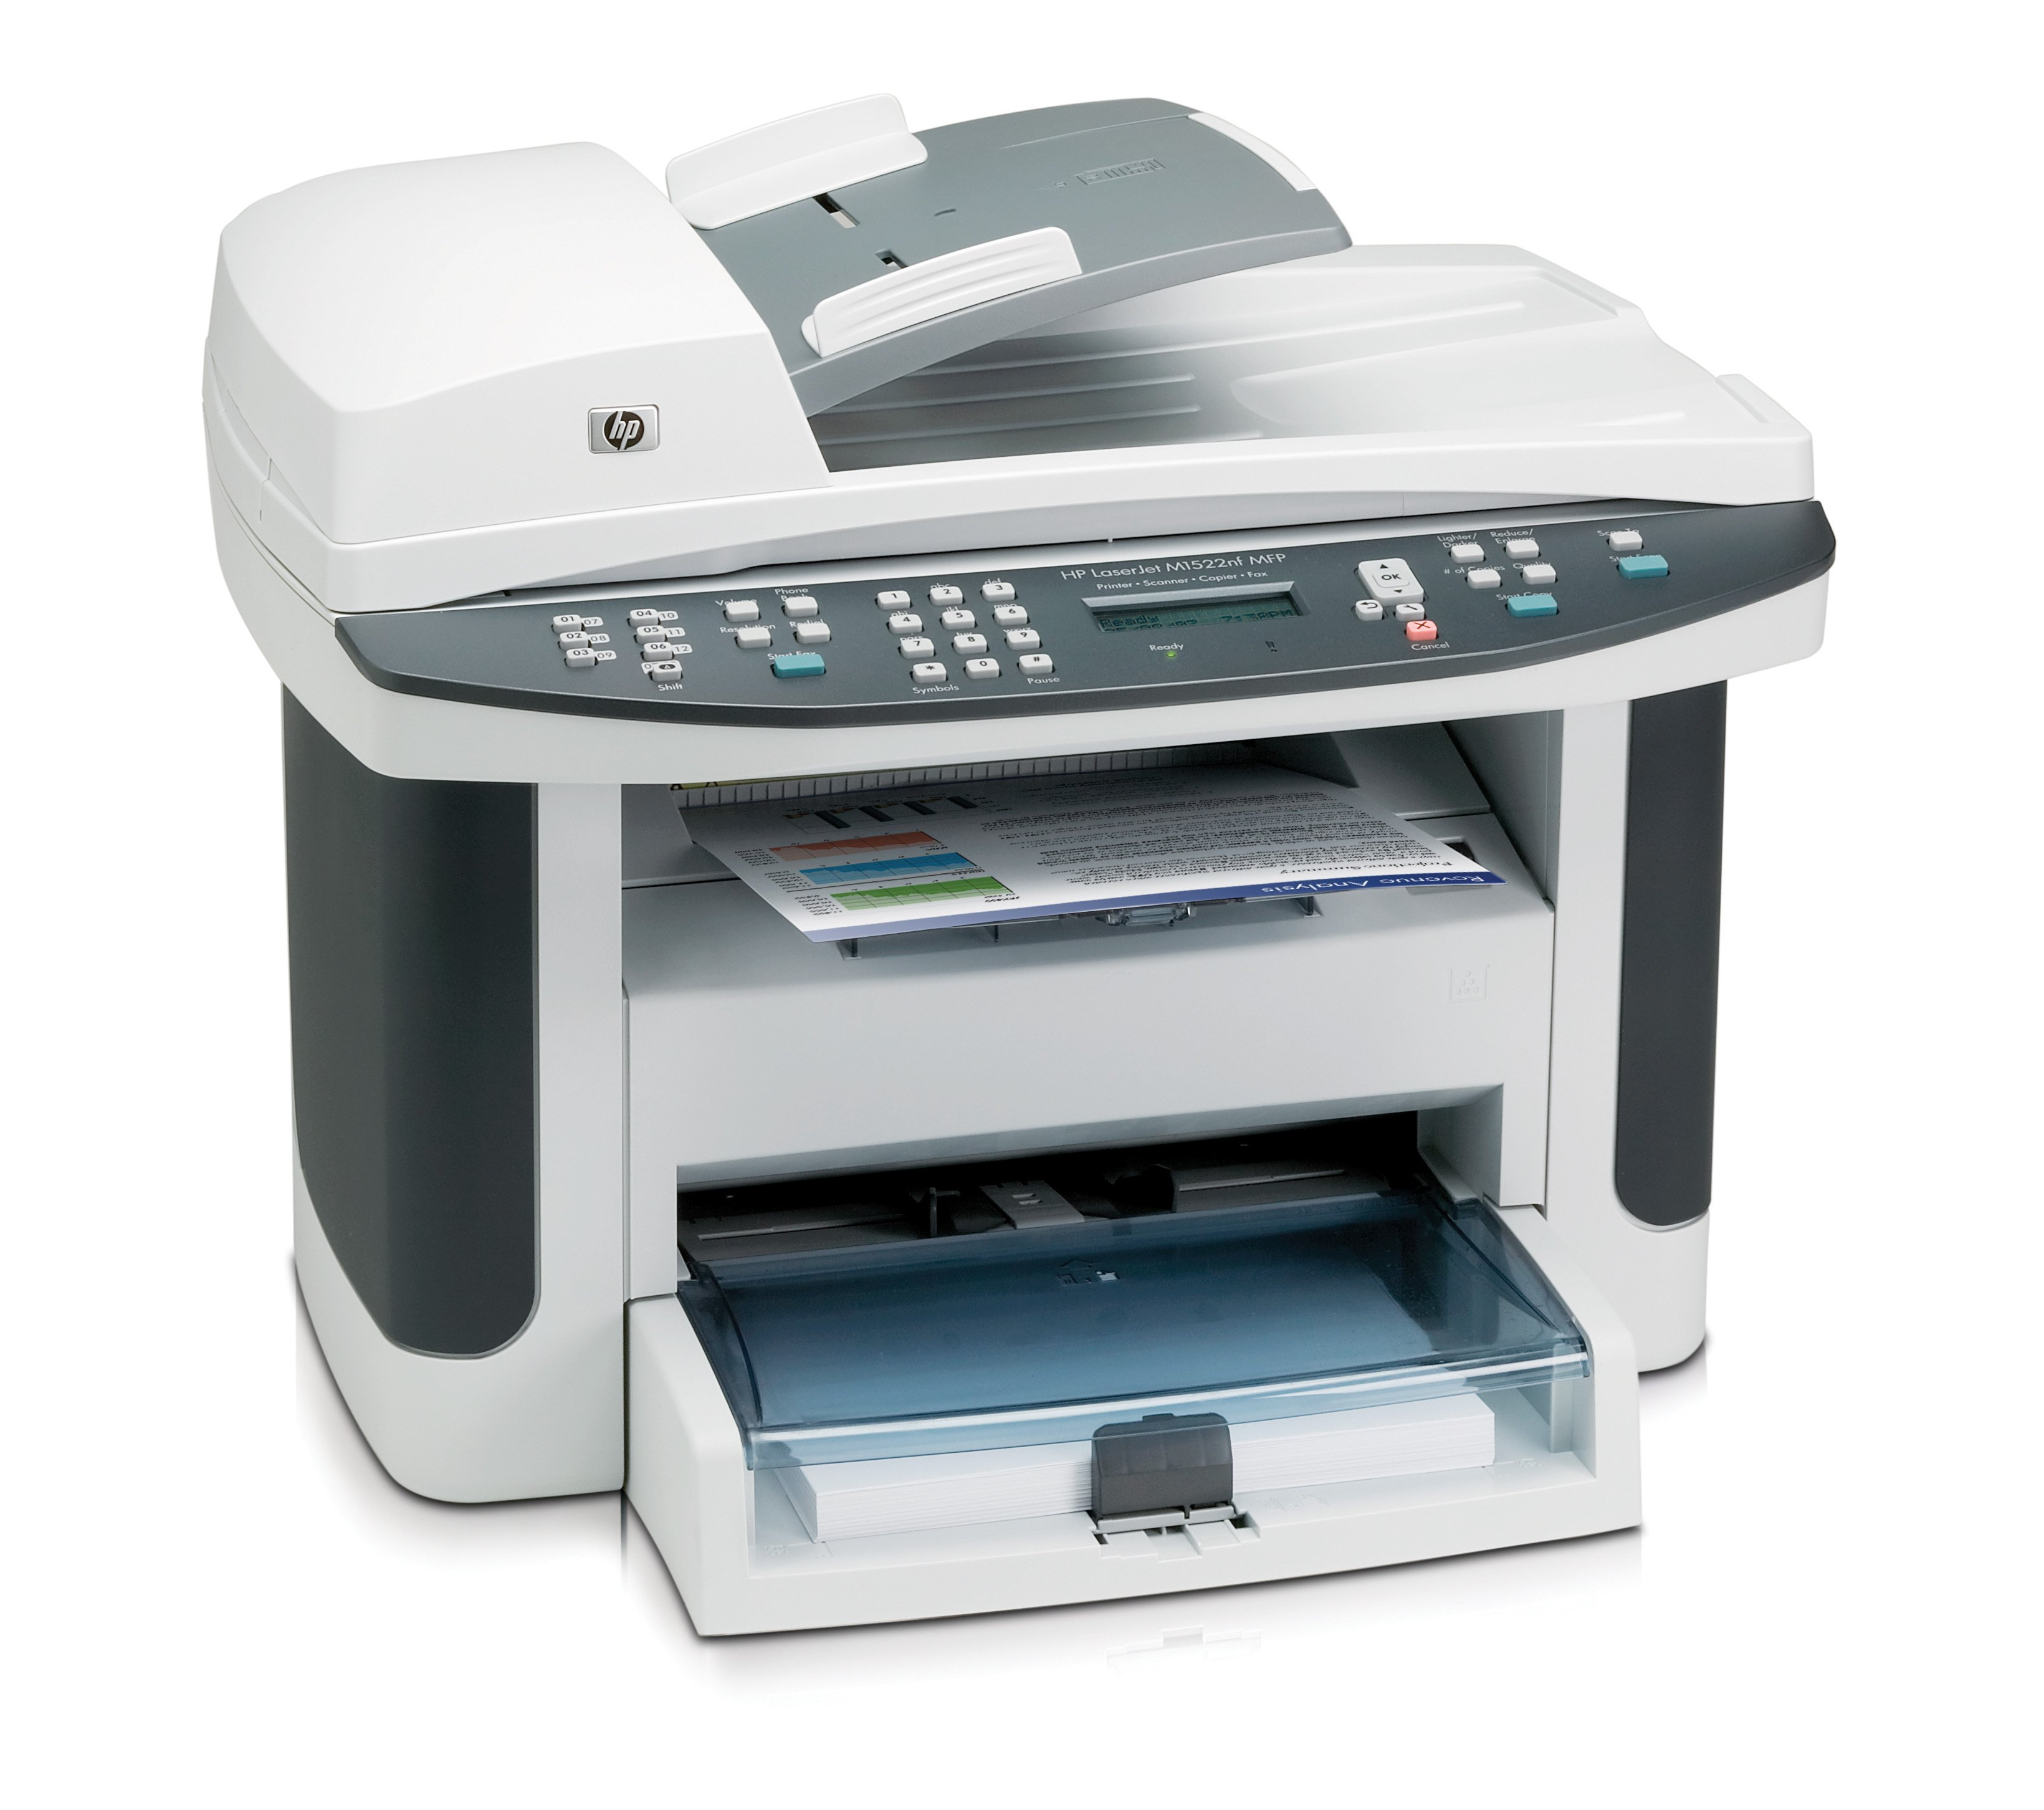 Принтер HP LaserJet M1522nf Multifunction Printer